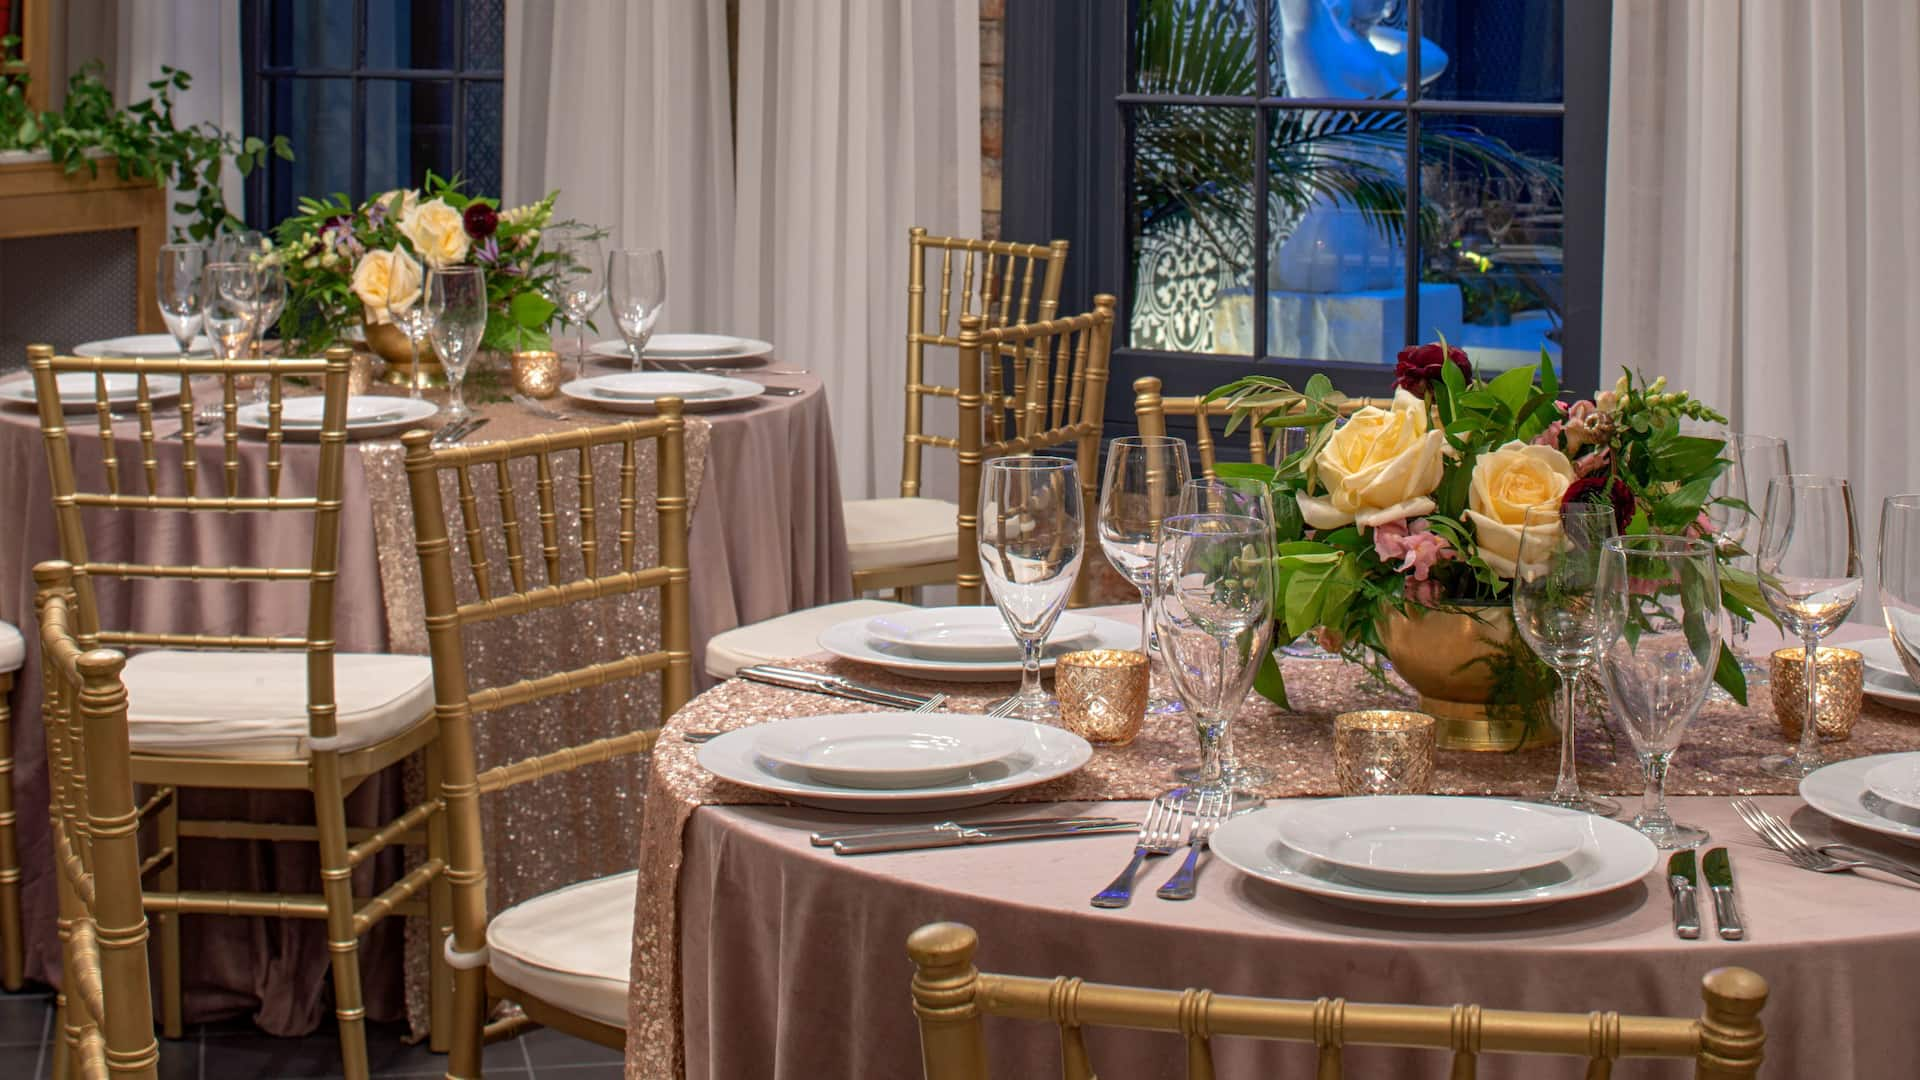 Couvant Private Dining Room set for a romantic rehearsal dinner